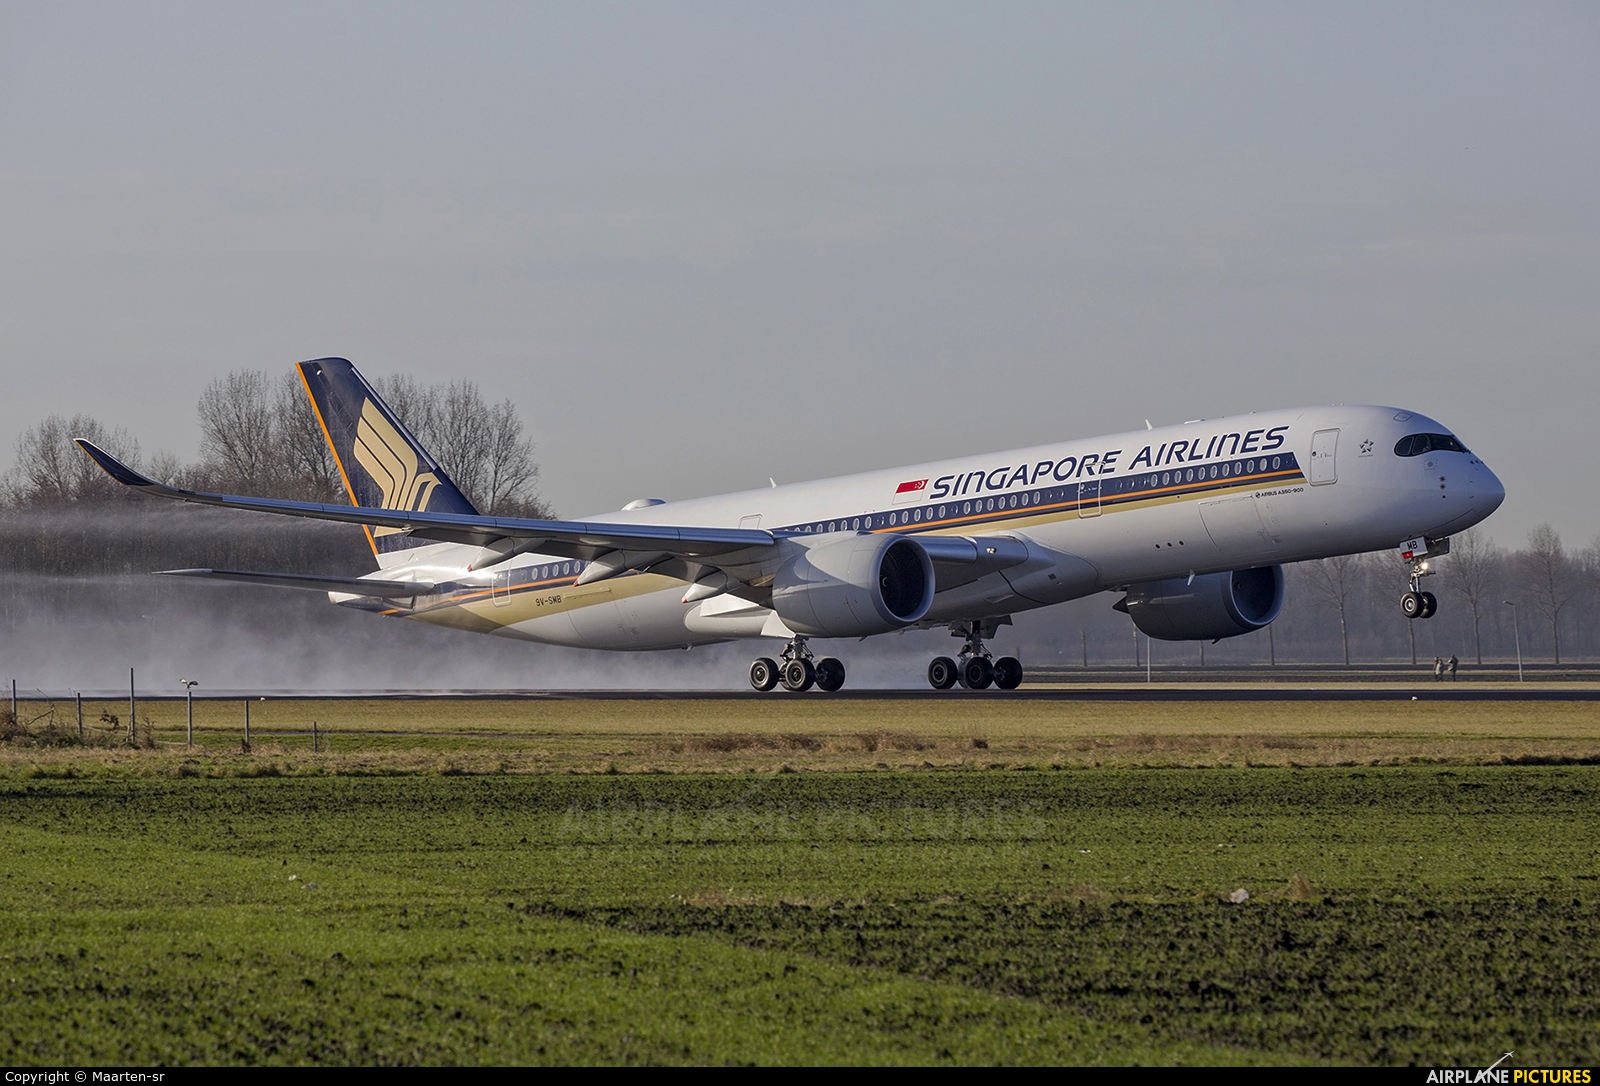 Singapore Airlines 9V-SMB aircraft at Amsterdam - Schiphol